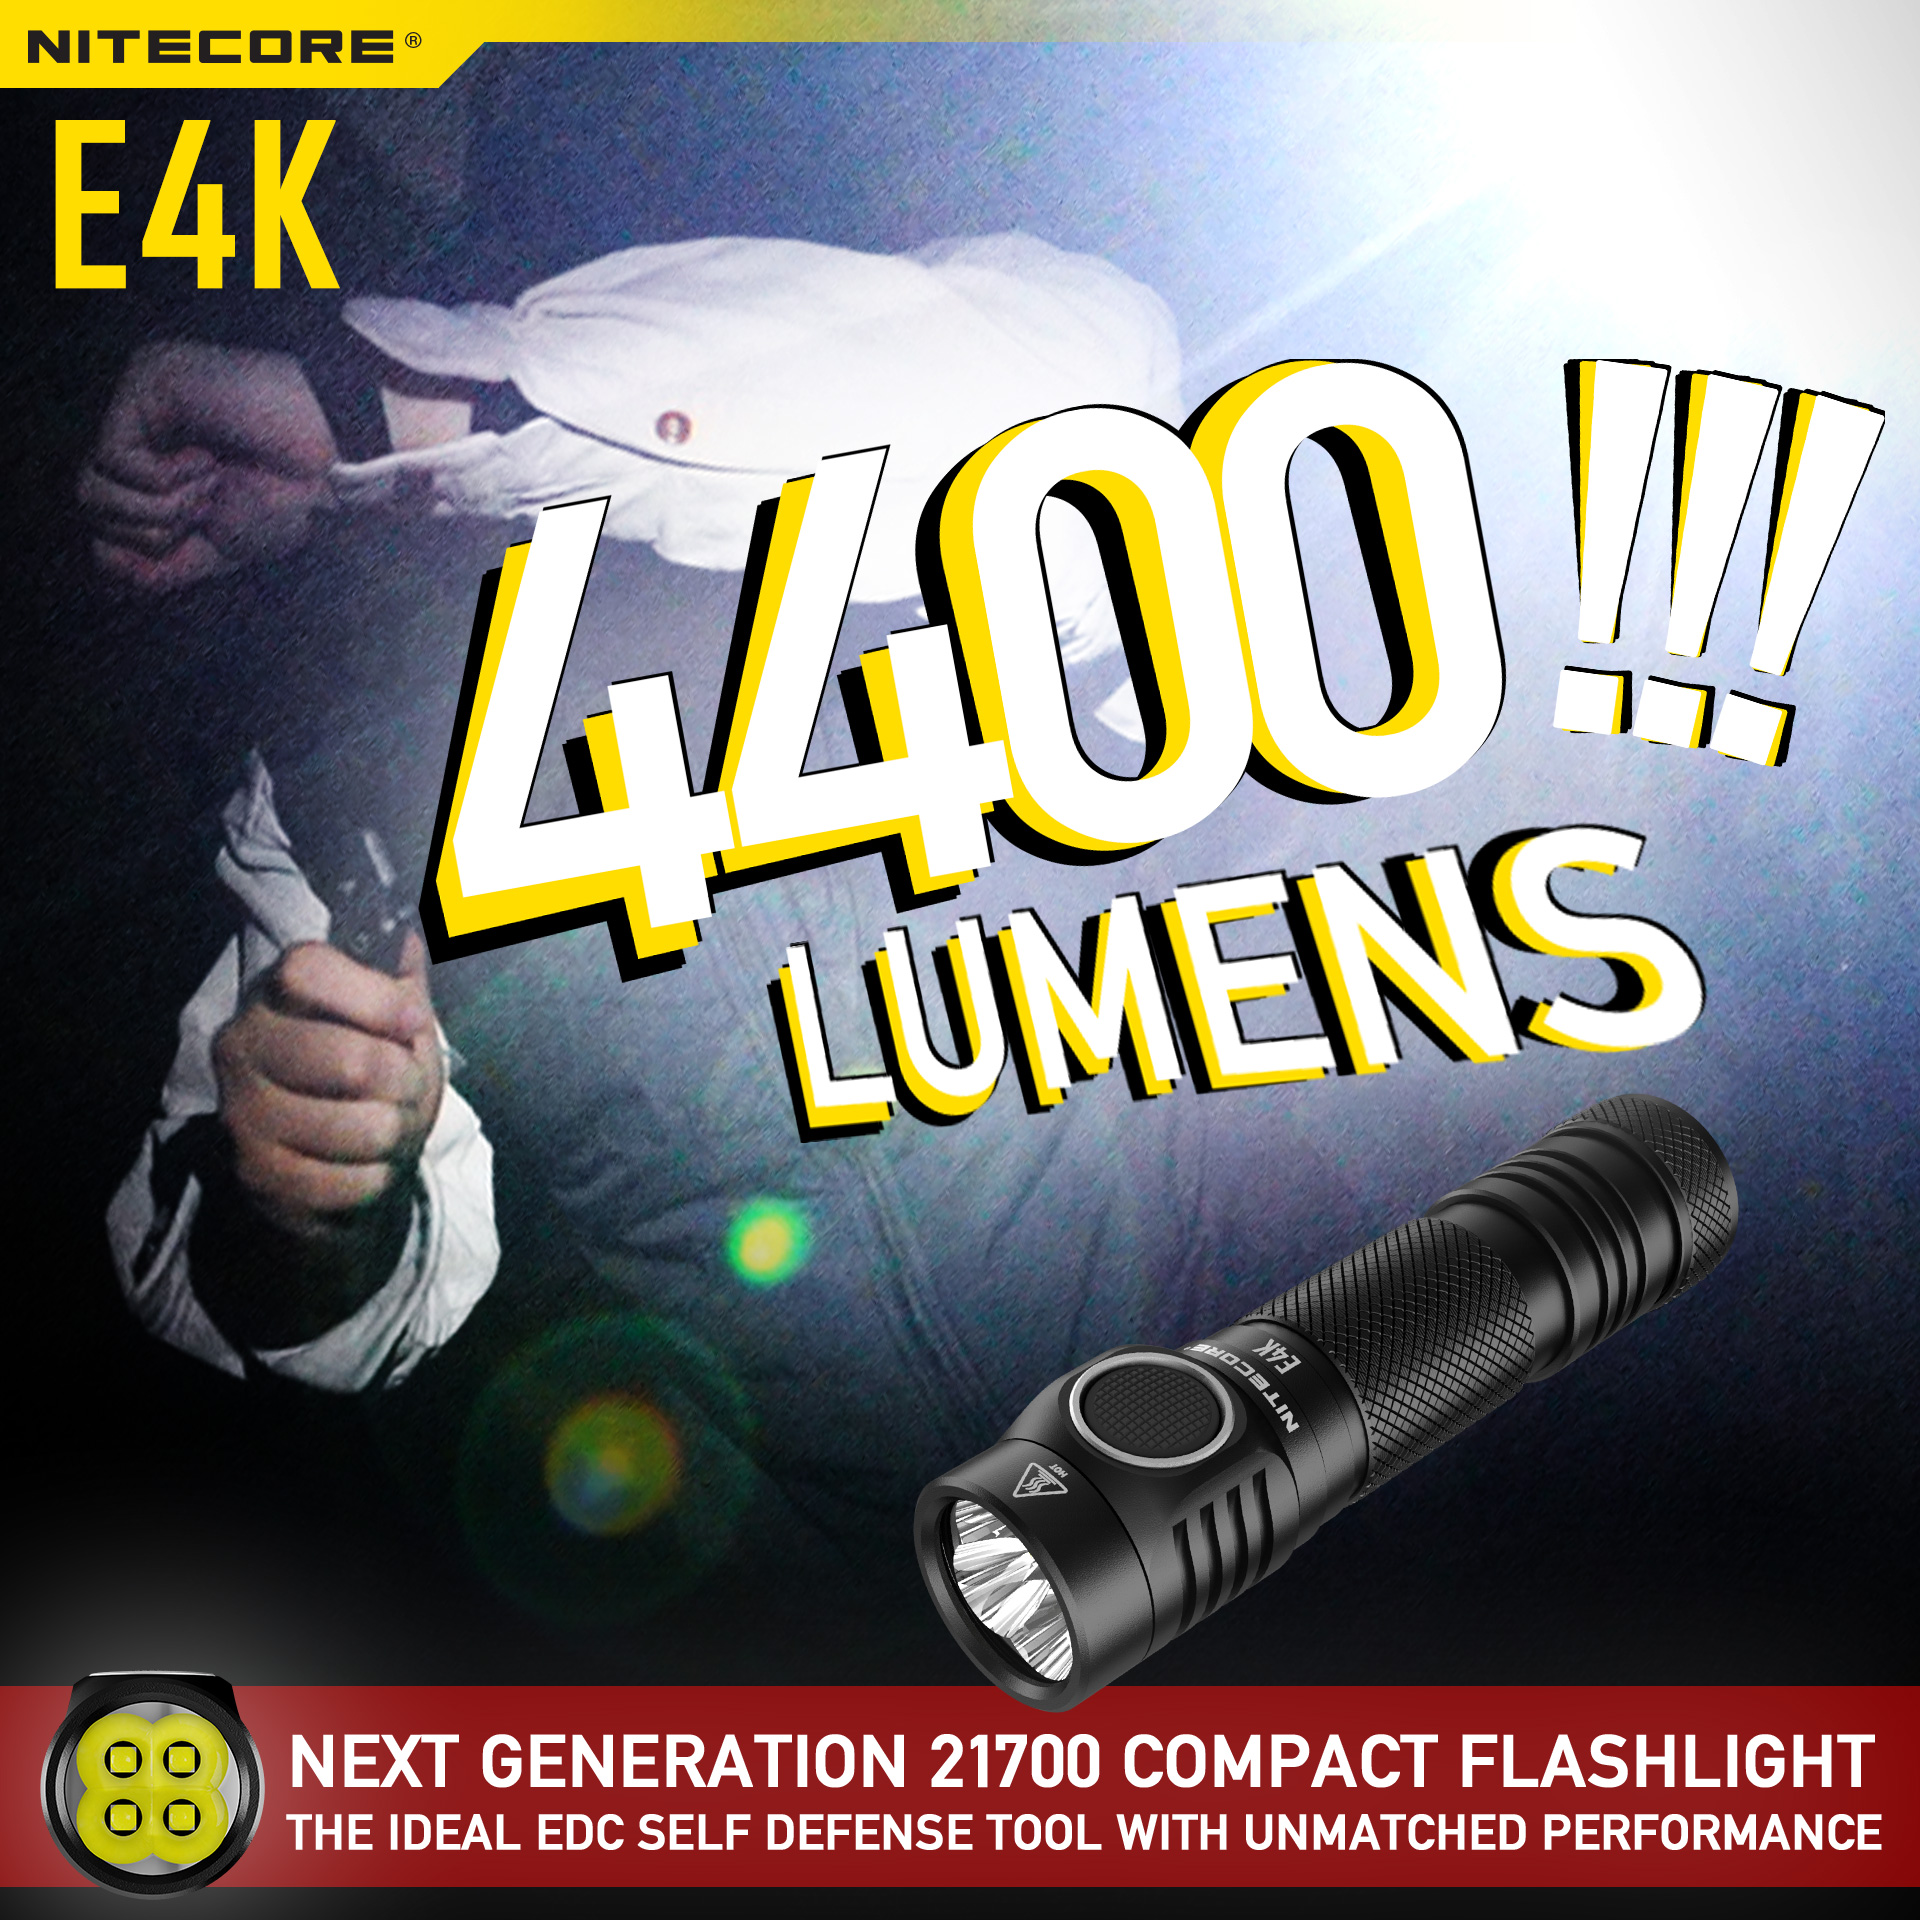 🔥🔥Light against the threat🔥🔥 With the blazing output of 4400 lumens and intuitive design, E4K not only can help you to see in the dark but also provide you the can defend against the attacker before getting into danger. The ideal EDC self defense tool with unmatched performance!!!...